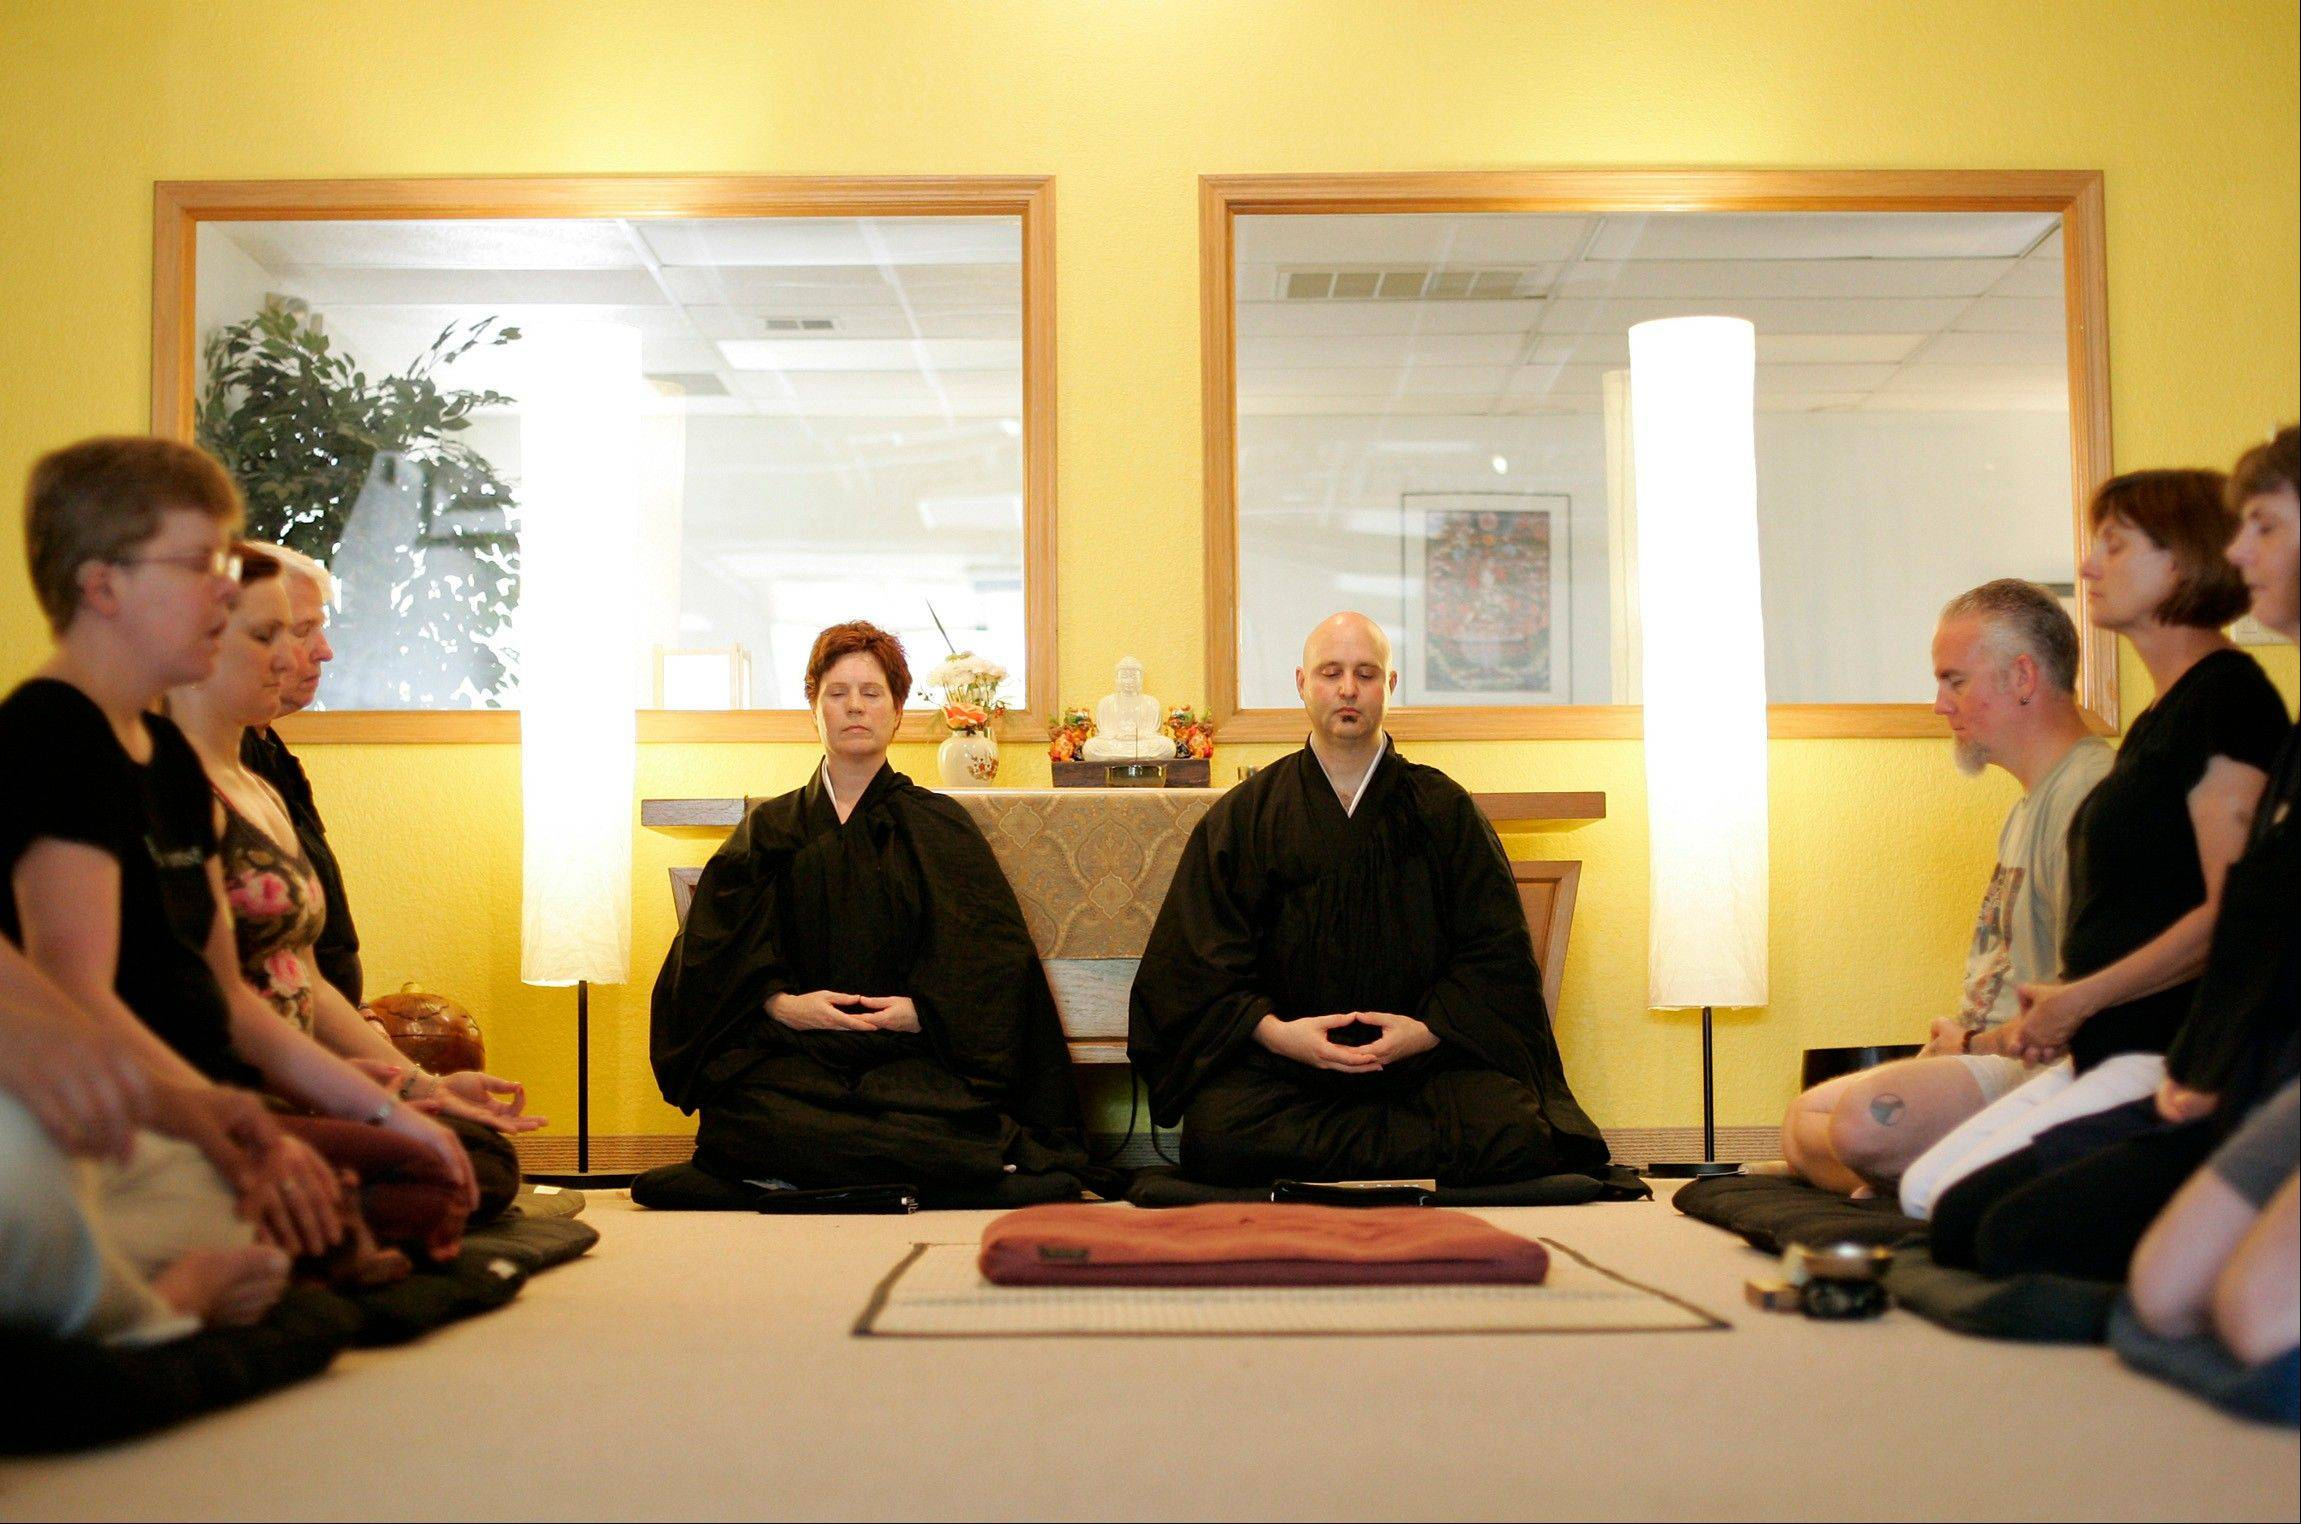 Rev. Karen Do-on Weik and her husband Rev. Jay Rinsen Weik meditate at the Toledo Zen Center in Holland, Ohio. The two have created a Sunday school and other programs to be especially welcoming to families.